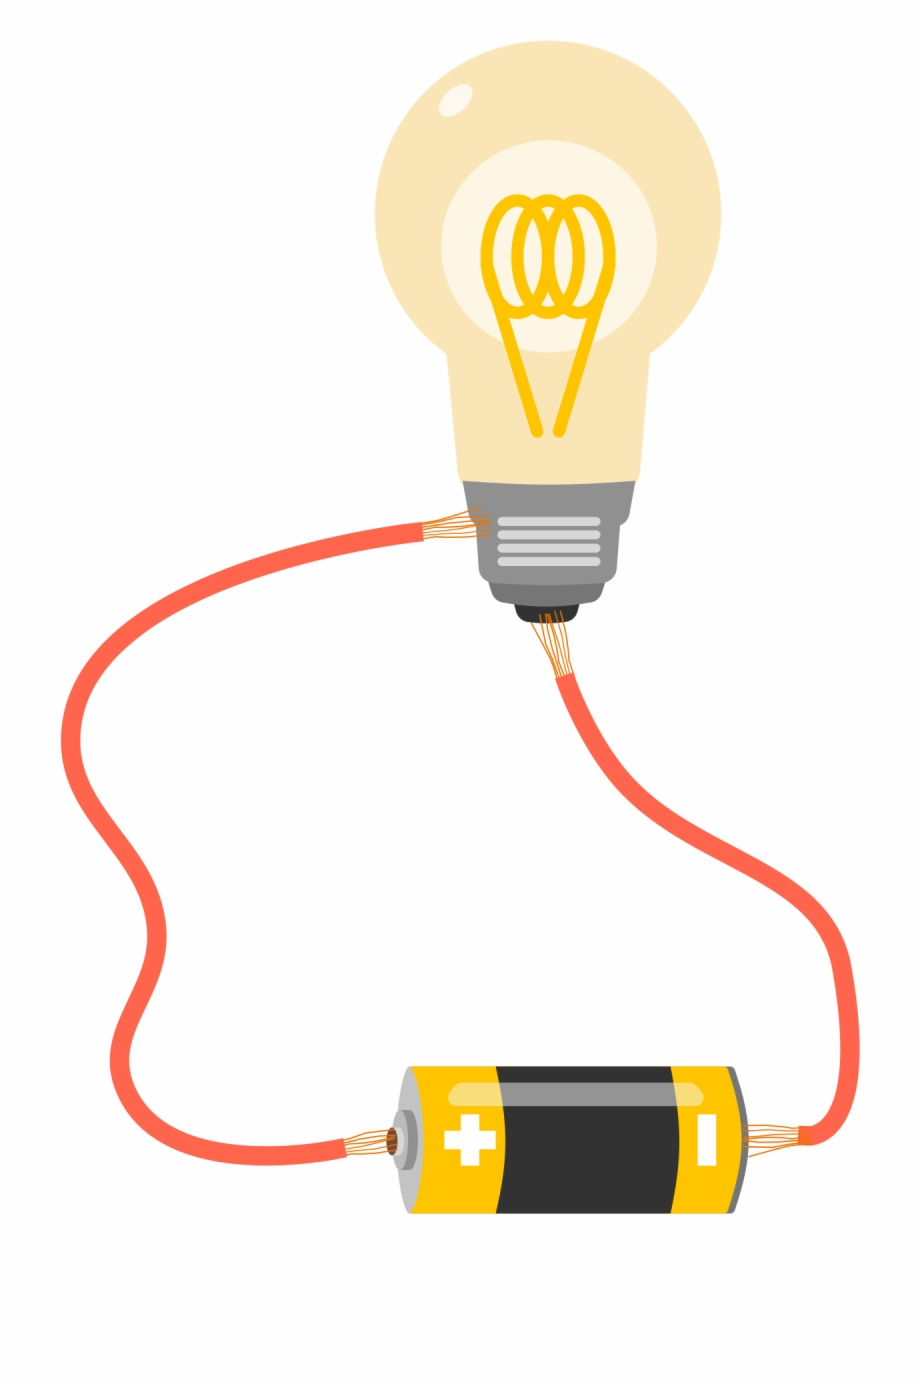 Light bulb battery clipart vector free download Mit Graduates Struggle To Light A Bulb With A Battery - Light Bulb ... vector free download